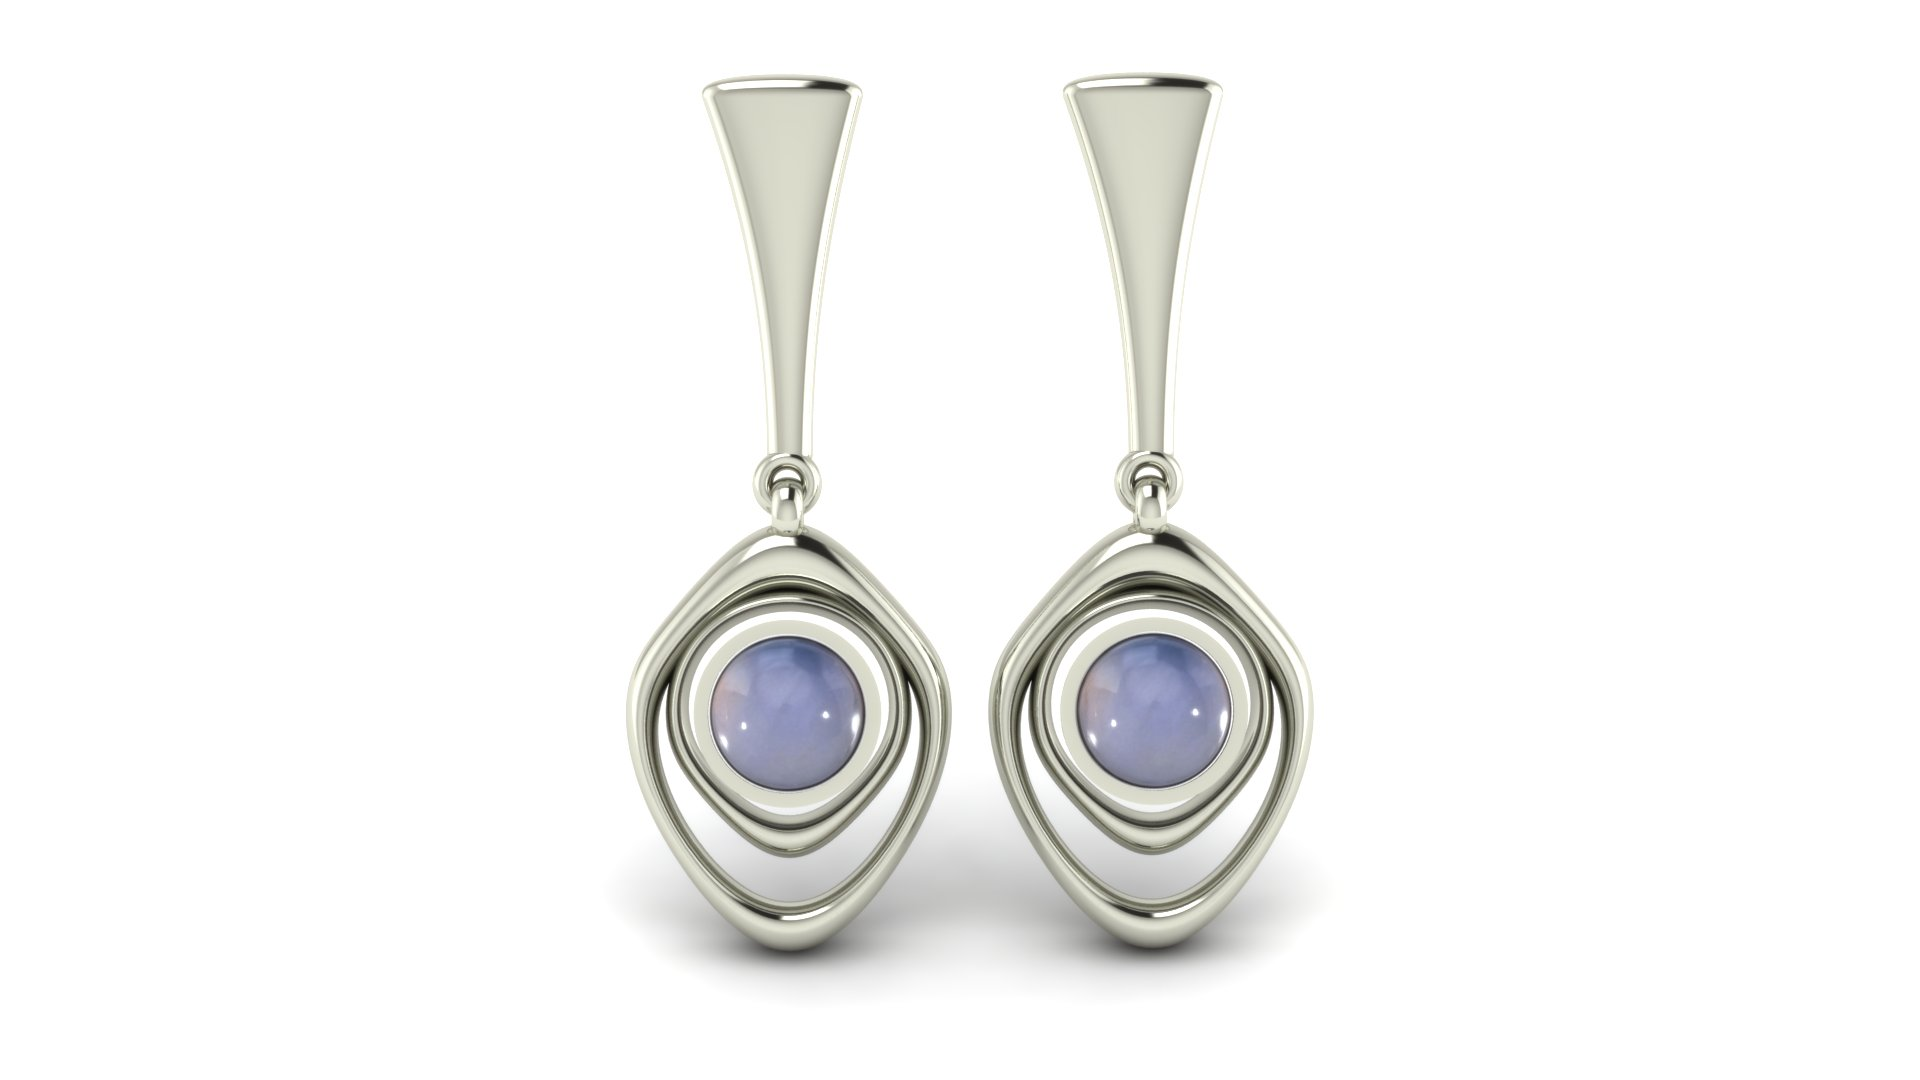 ARTSY MOONSTONE EARRINGS